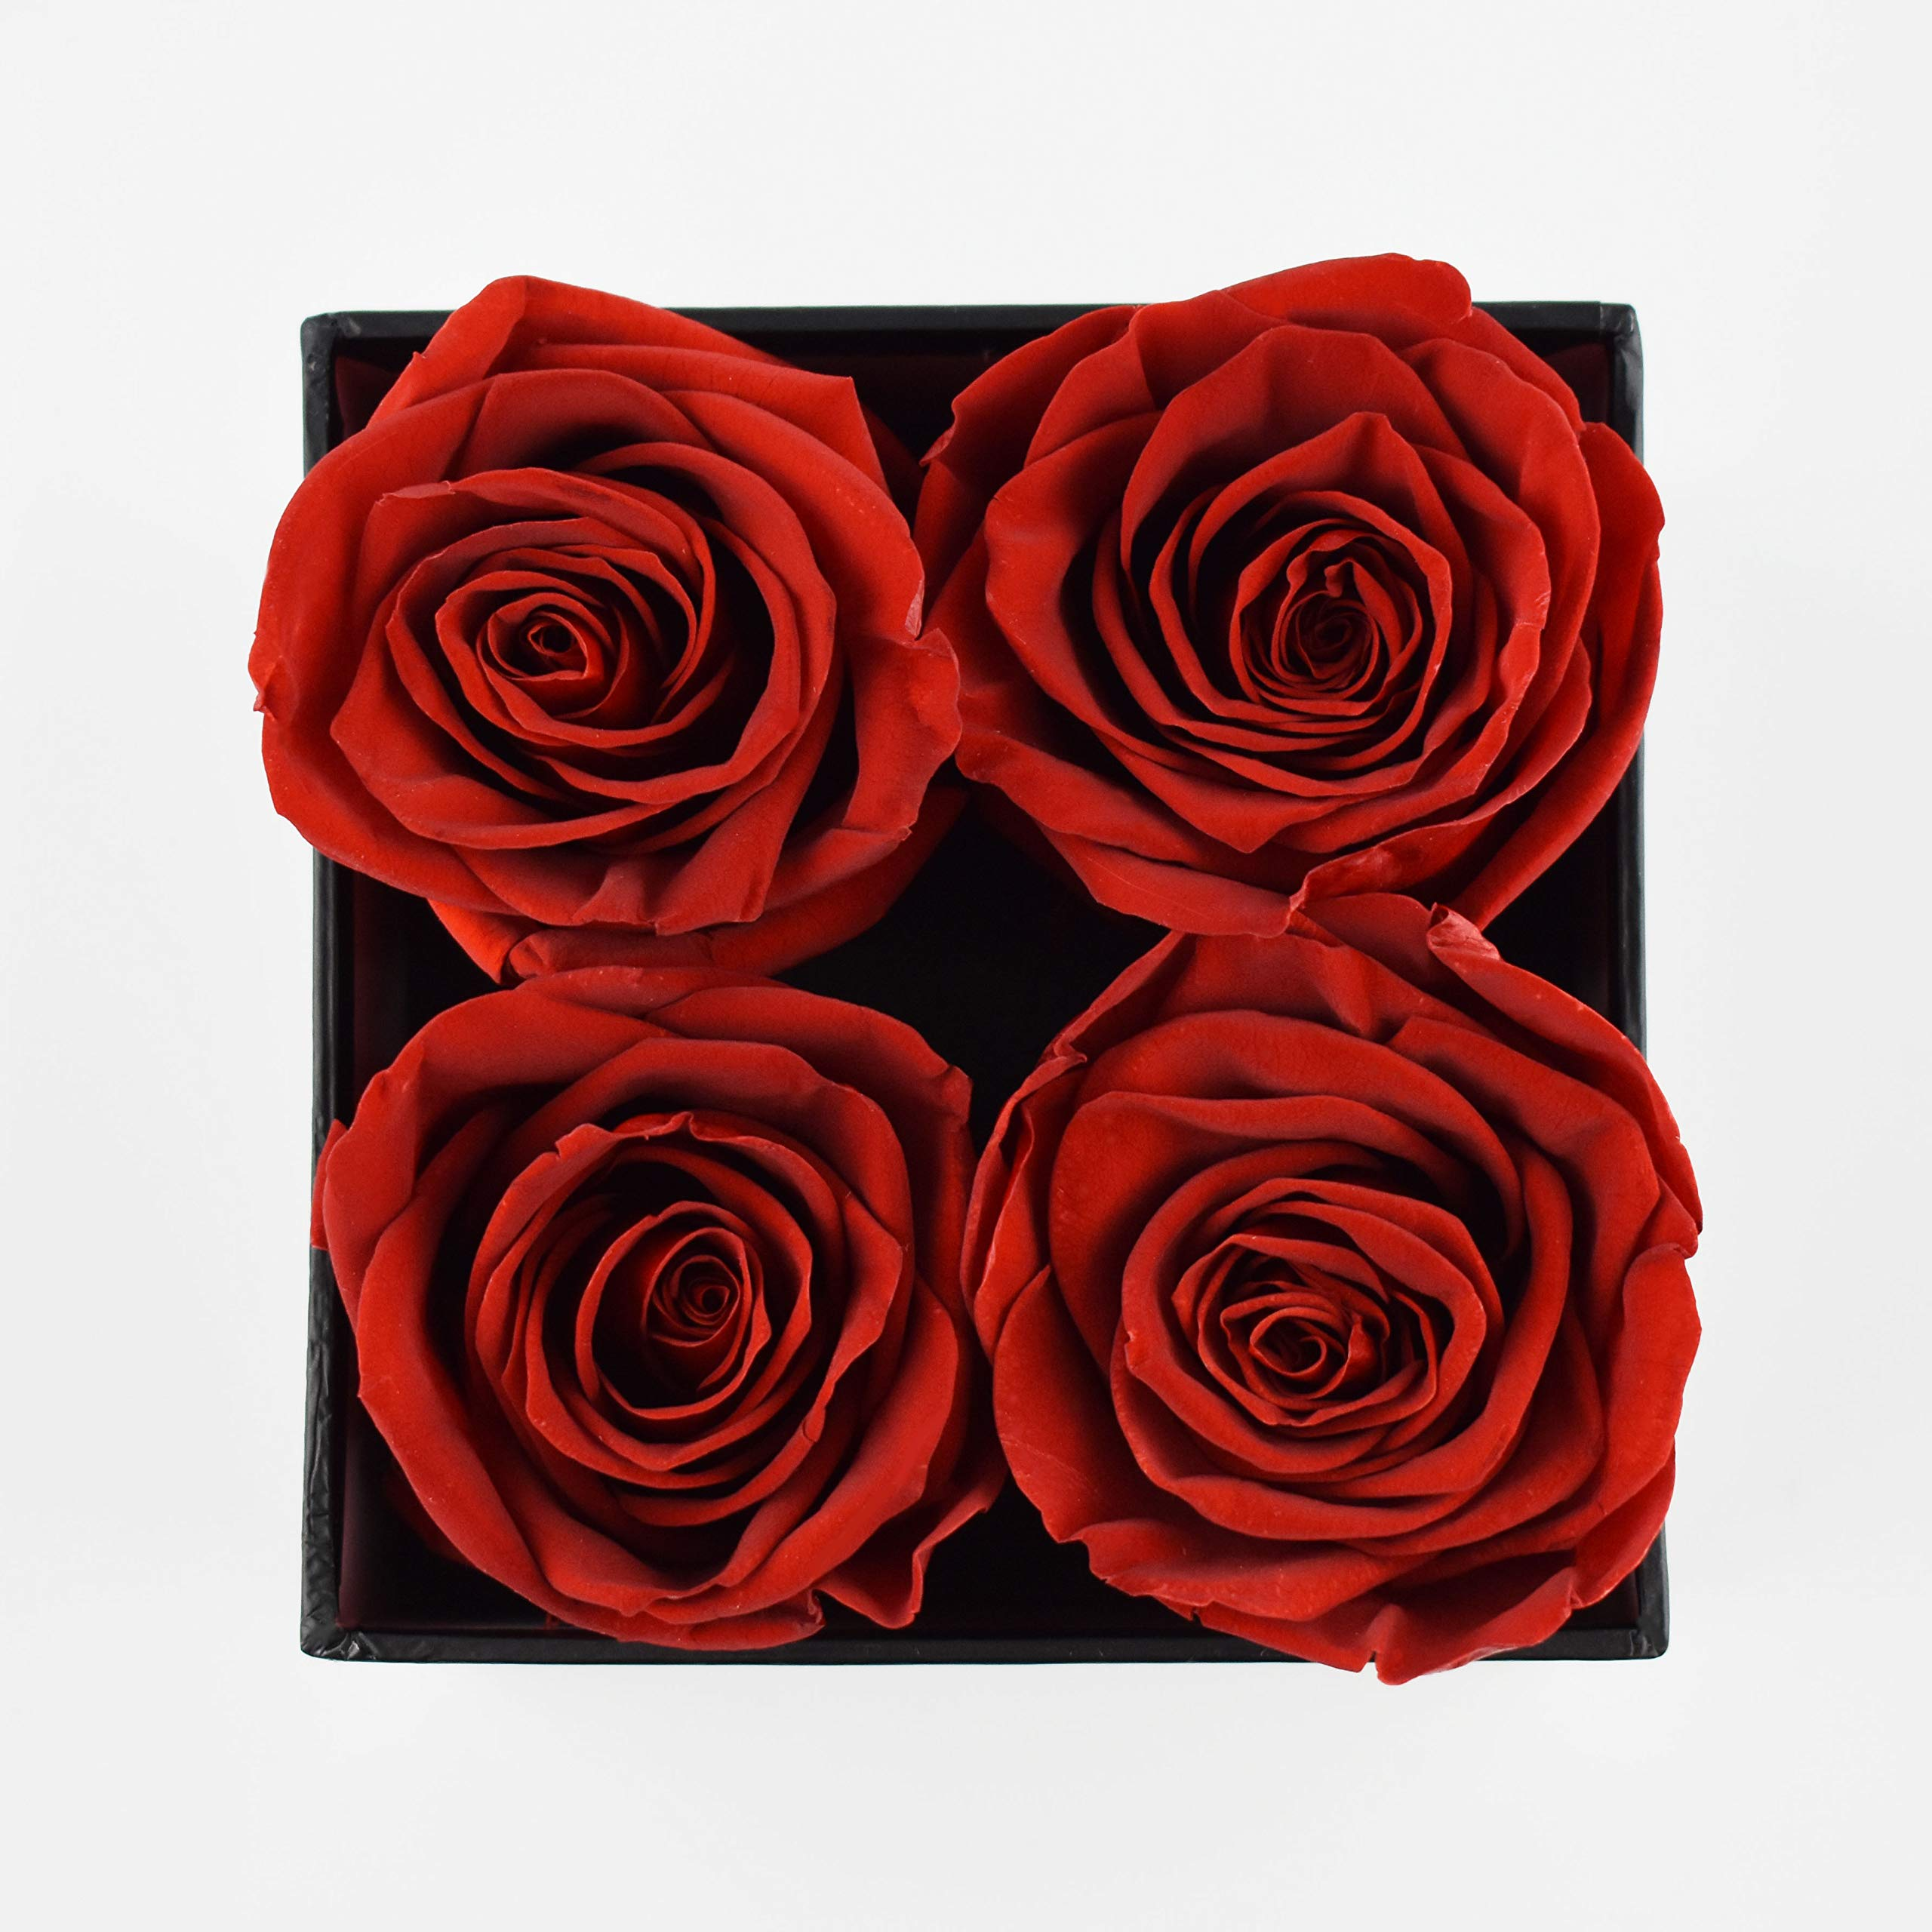 Premium Roses | Model Posh | Real Roses That Last 365 Days | Roses in a Box| Fresh Flowers (Black Box, Small) by Premium Roses (Image #4)